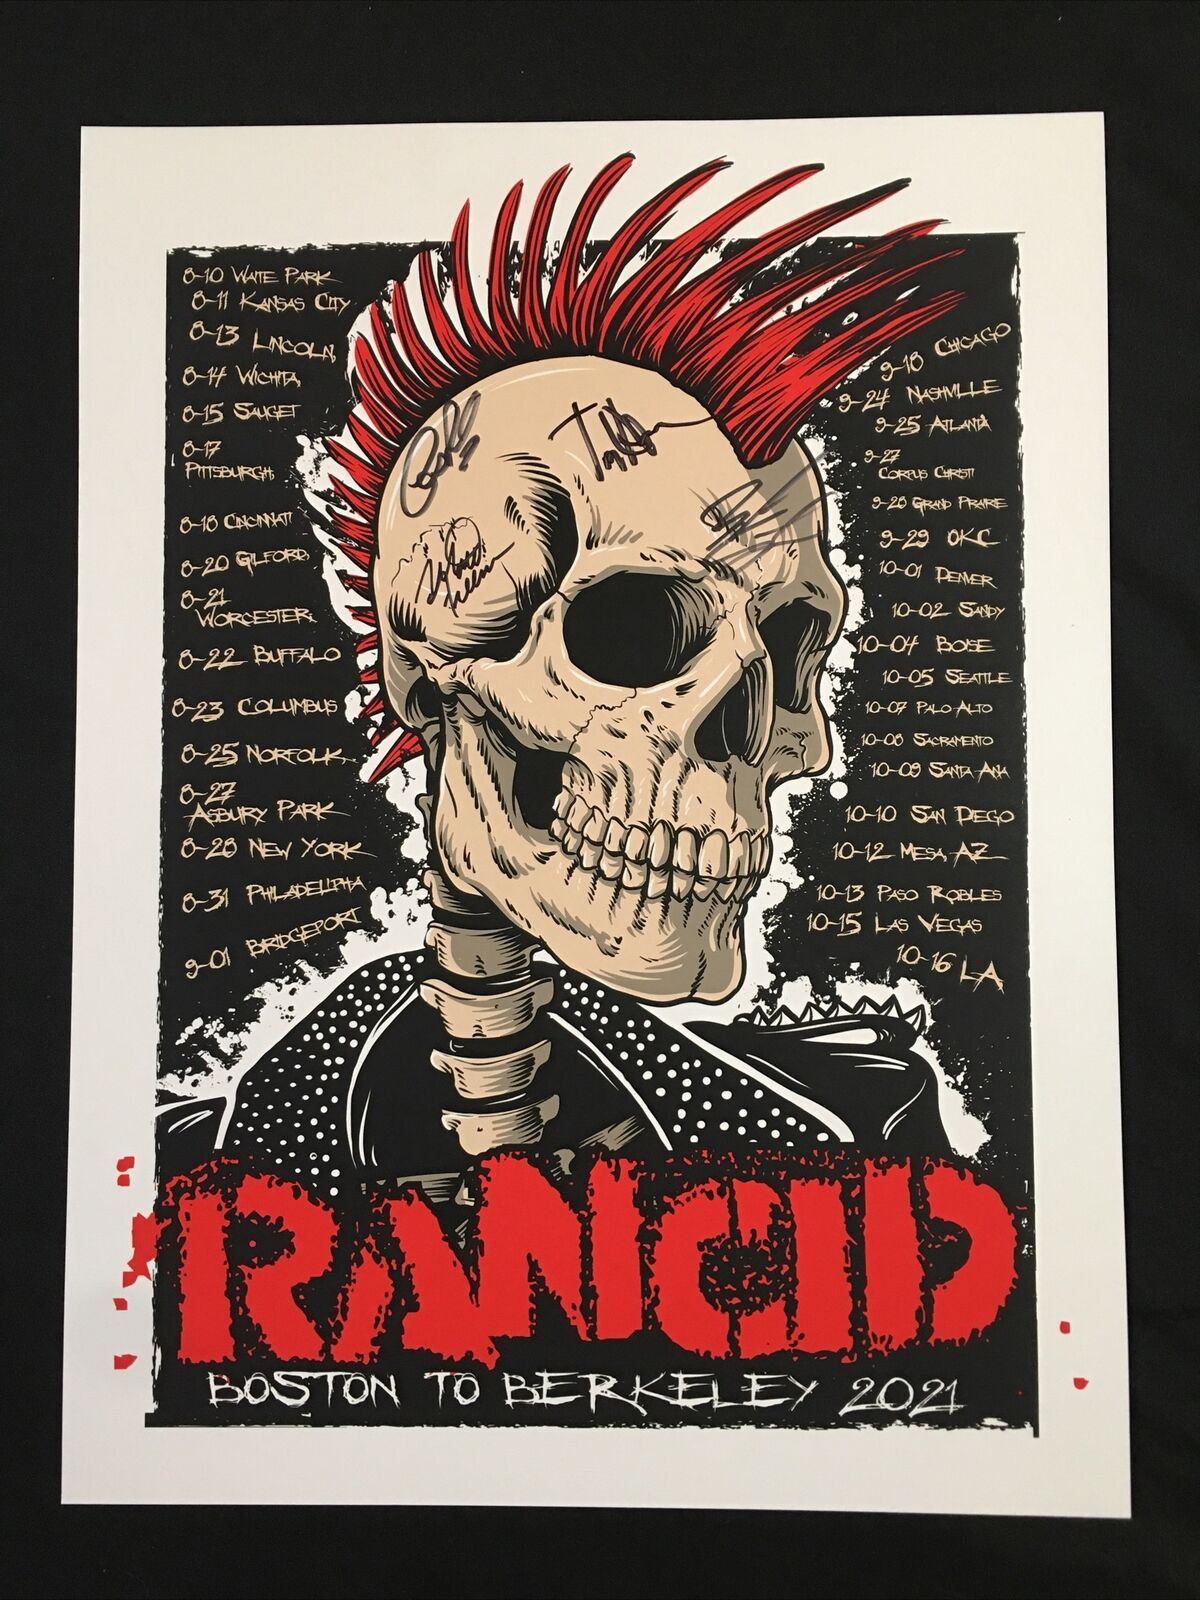 Rancid 2021 4x Autographed Poster Print Boston To Berkeley Tour - Signed By Band - $150.00